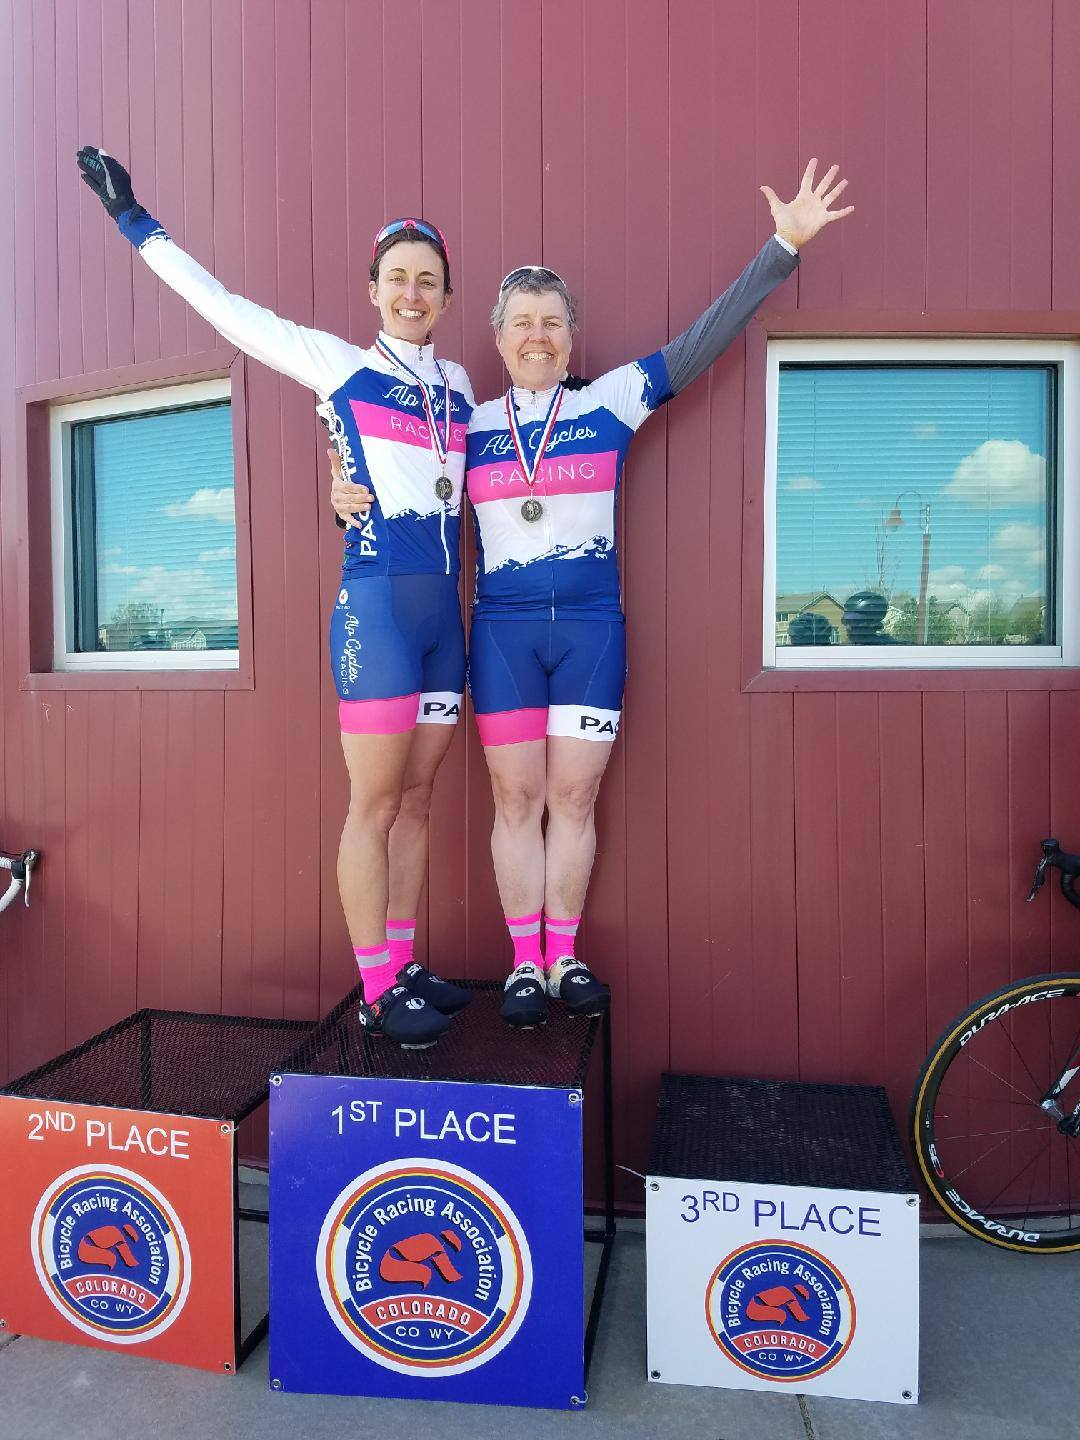 Standing on top of the podium makes all of that suffering worth it. ALP Cycles Race Team athletes Cory Popovich and Sandy North's smiles say it all.